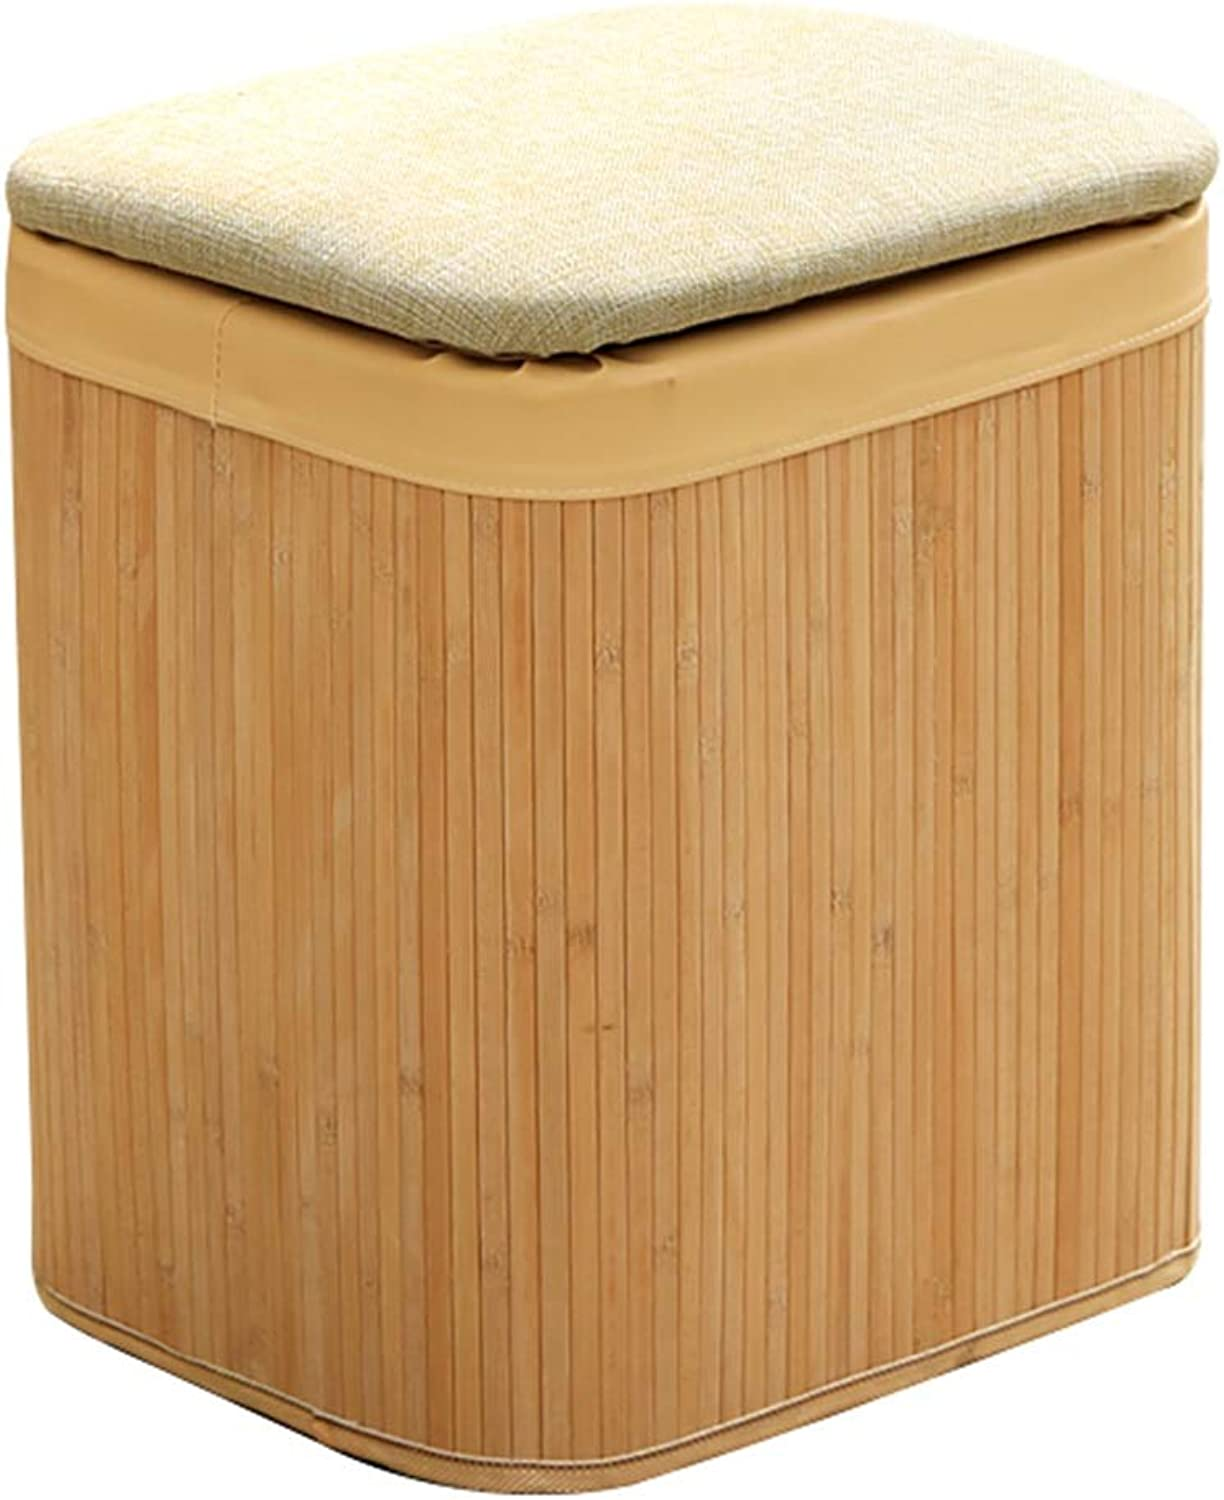 Storage Stool Bamboo Wood Sofa Stool Fashion Home Multi-Function shoes Bench Solid color Simple WEIYV (color   Beige, Size   40  34  45cm)